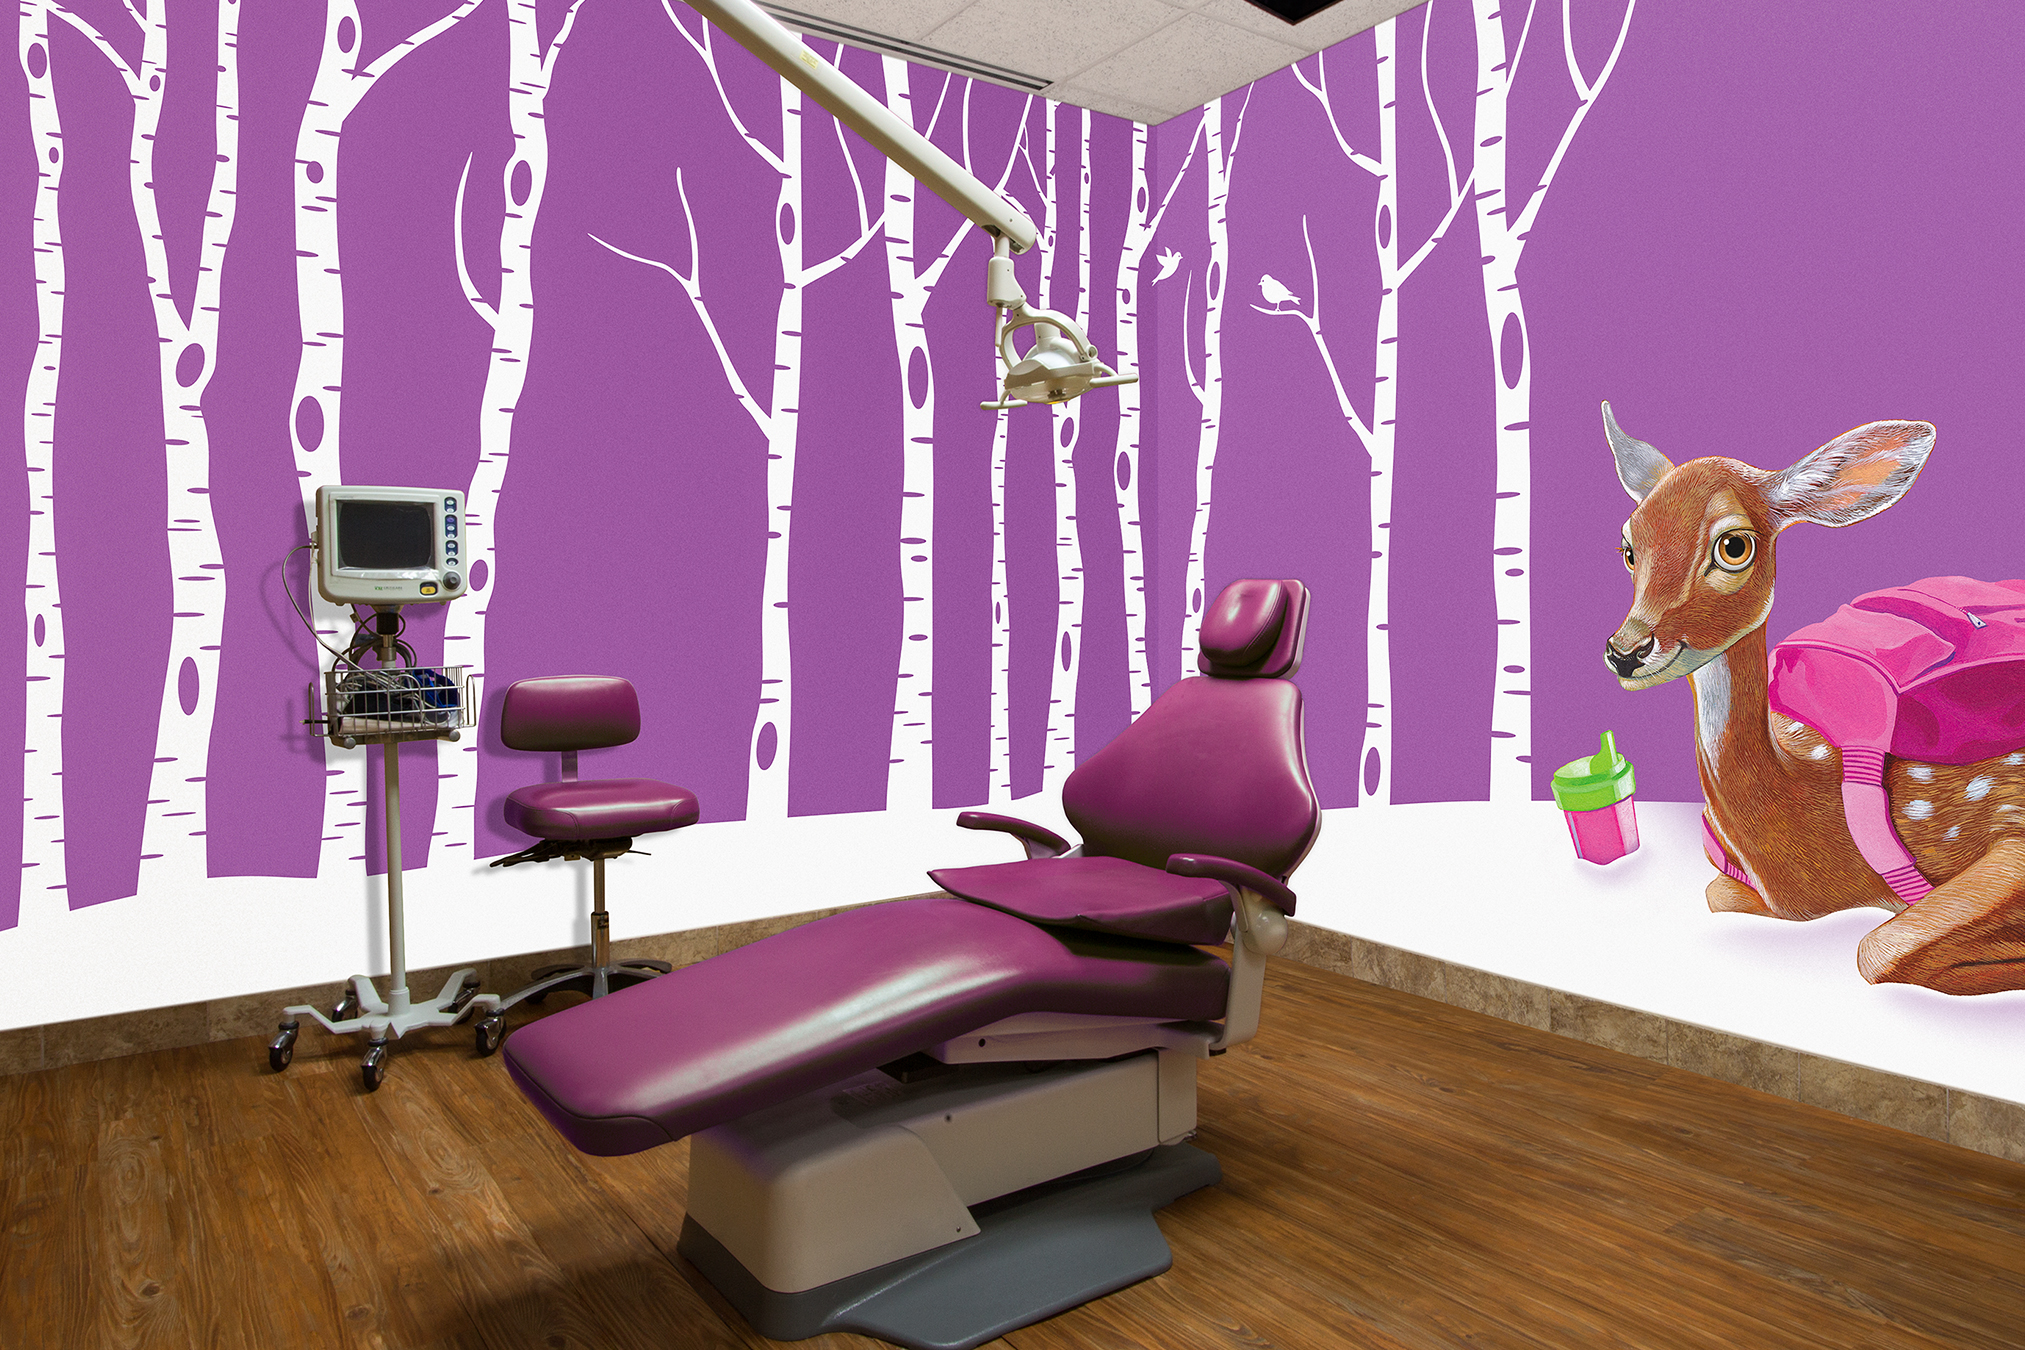 Pediatric Office Themed Treatment Patient Room Wall Mural